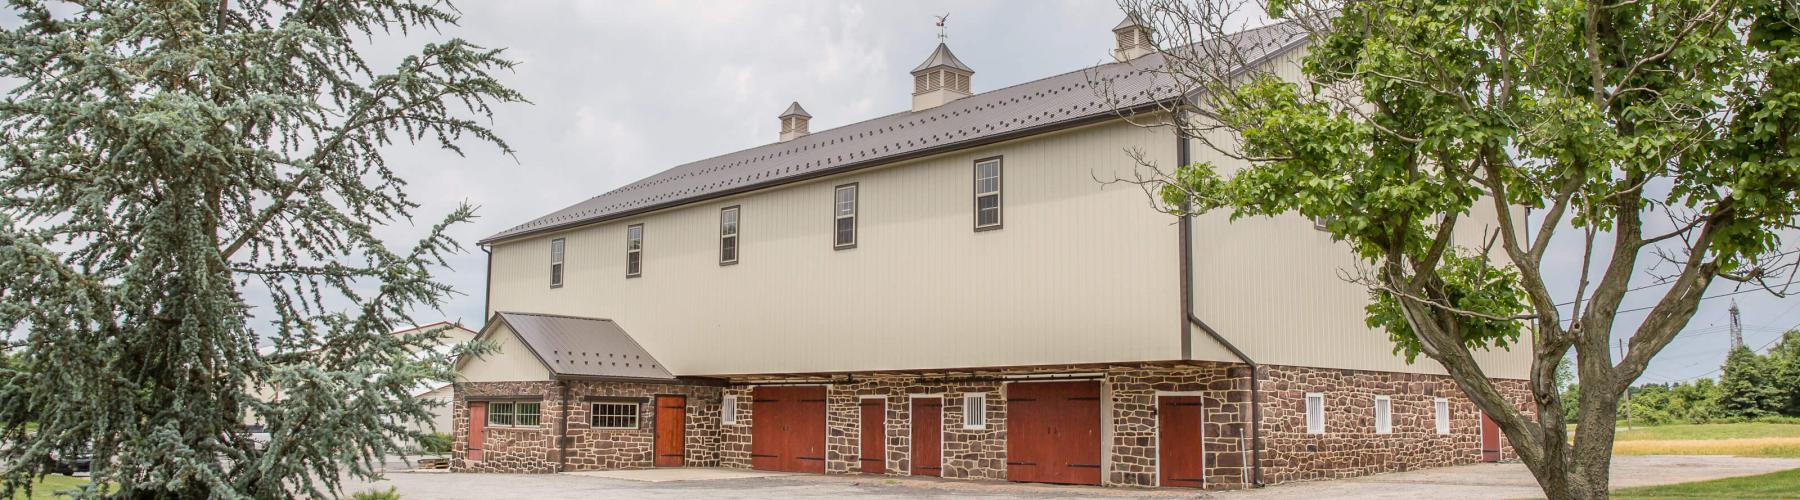 Bank barn renovated by Stable Hollow Construction.